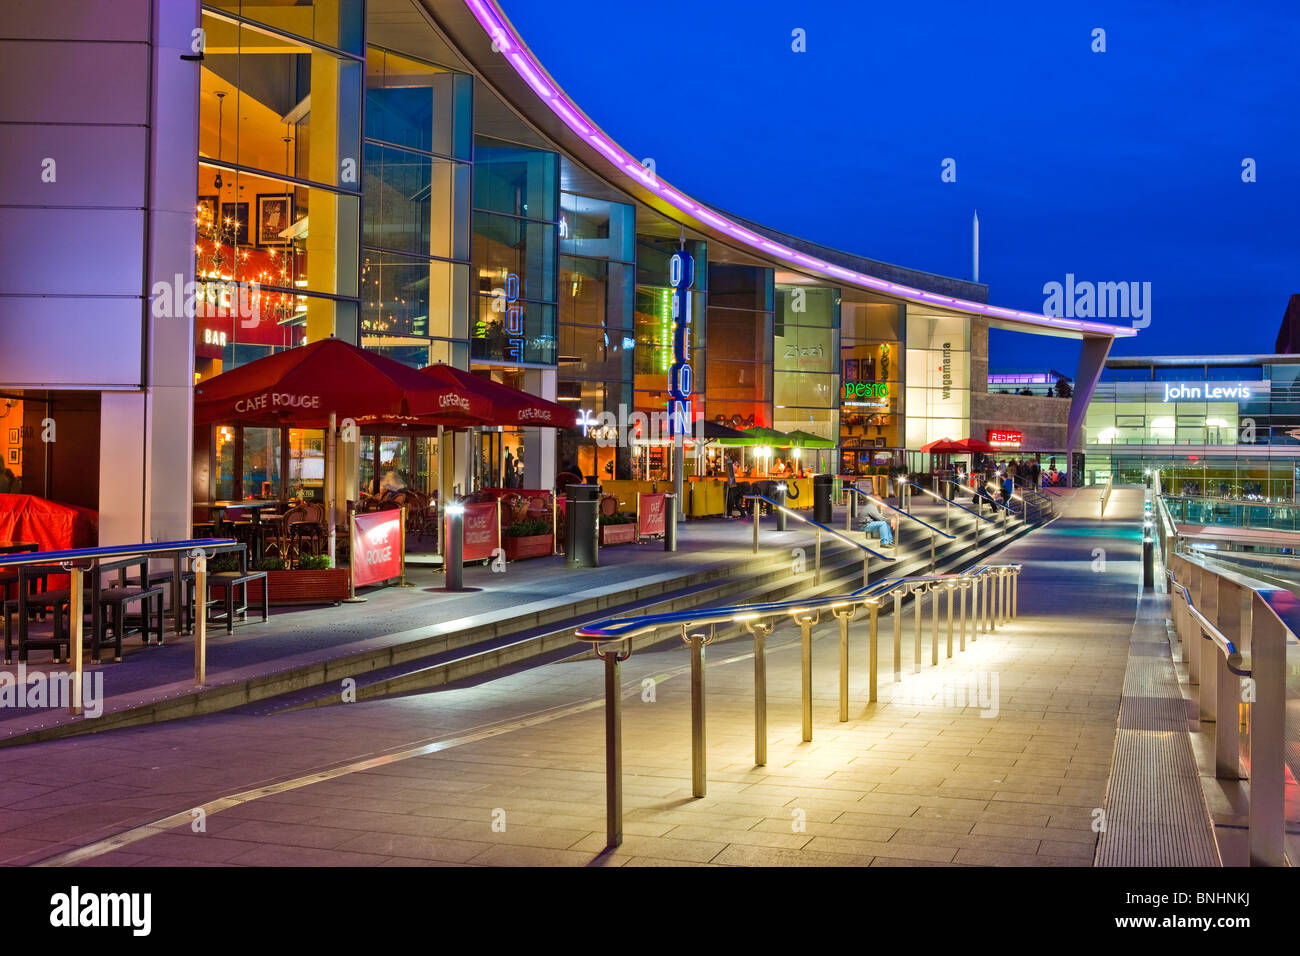 Liverpool One Shopping Mall Complex Liverpool England UK at twilight - Stock Image